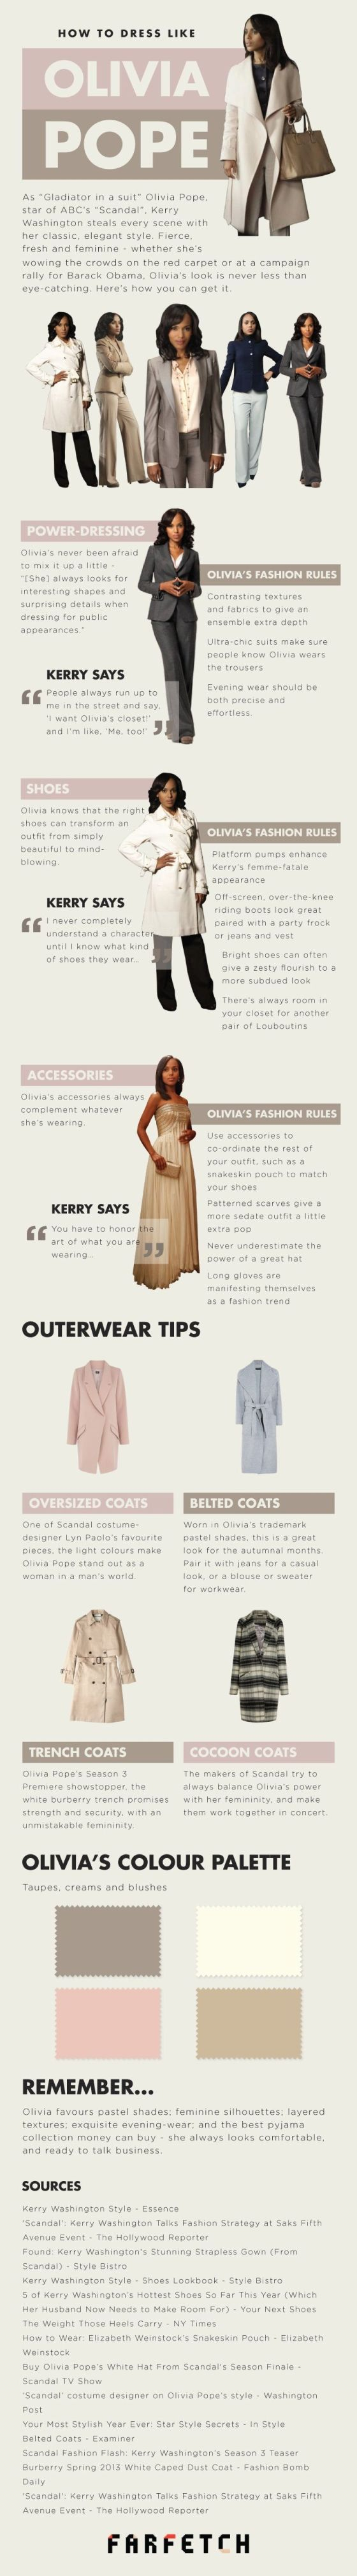 how to dress like olivia pope